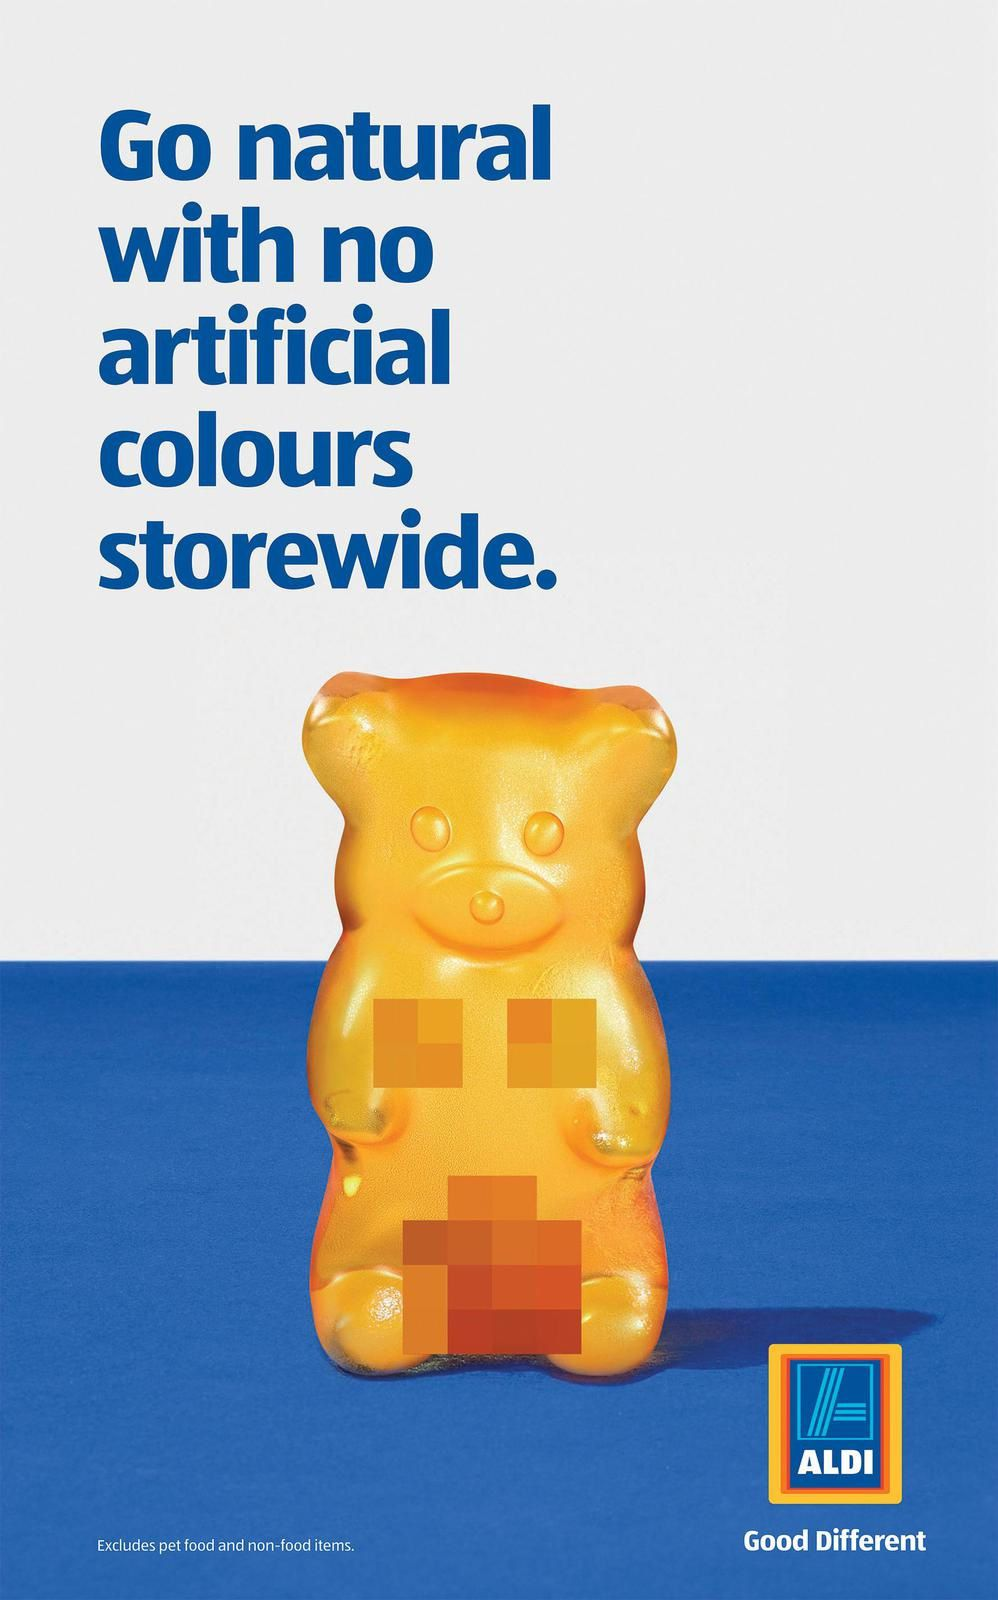 "ALDI - ""Go natural with no artificial colours storewide"" (bonbons sans colorants artificiels) I Agence : BMF, Australie (septembre 2017)"